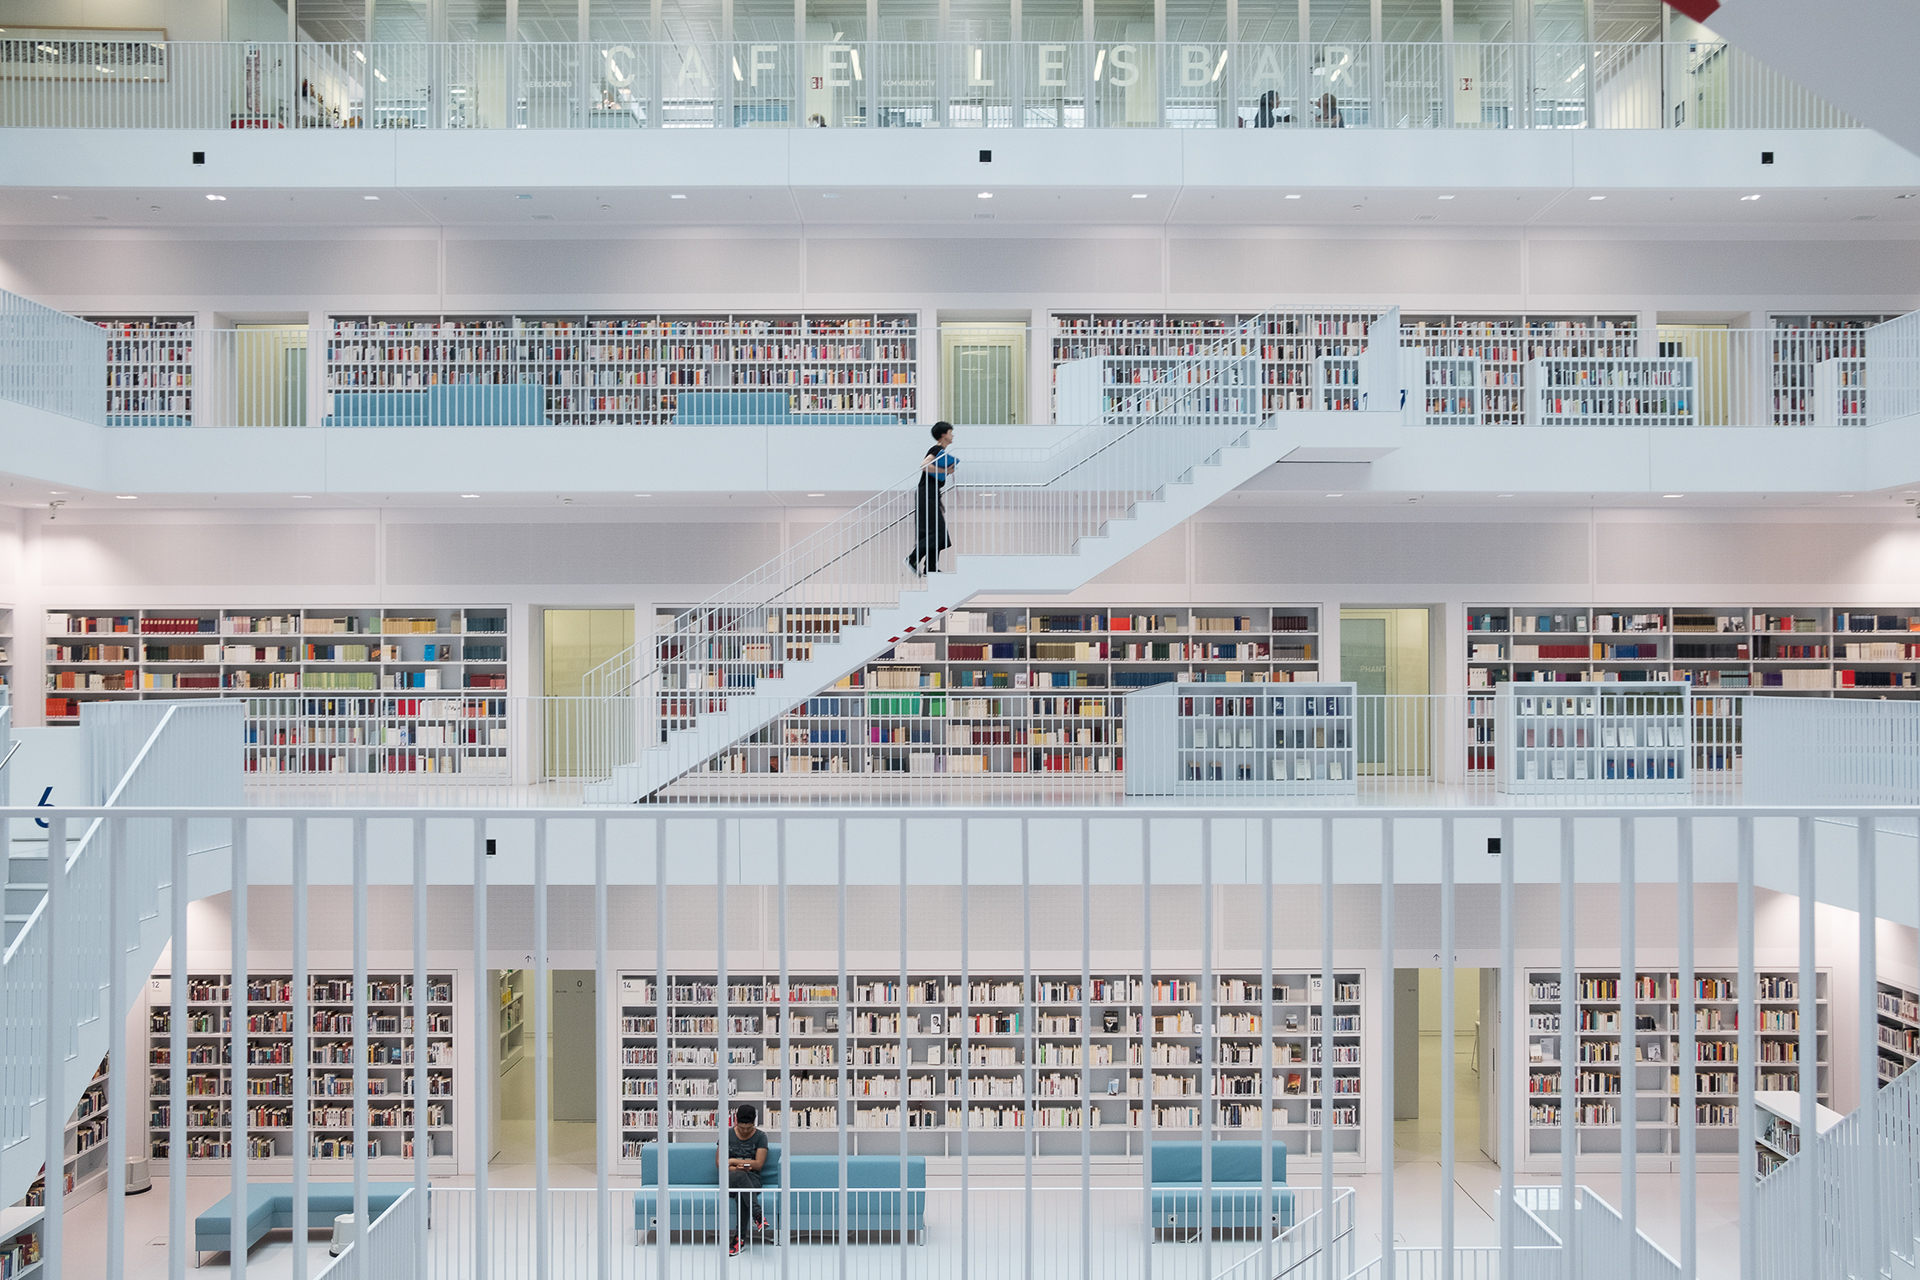 Peaceful Library in Stuttgart by Skander Khlif (7 pics)